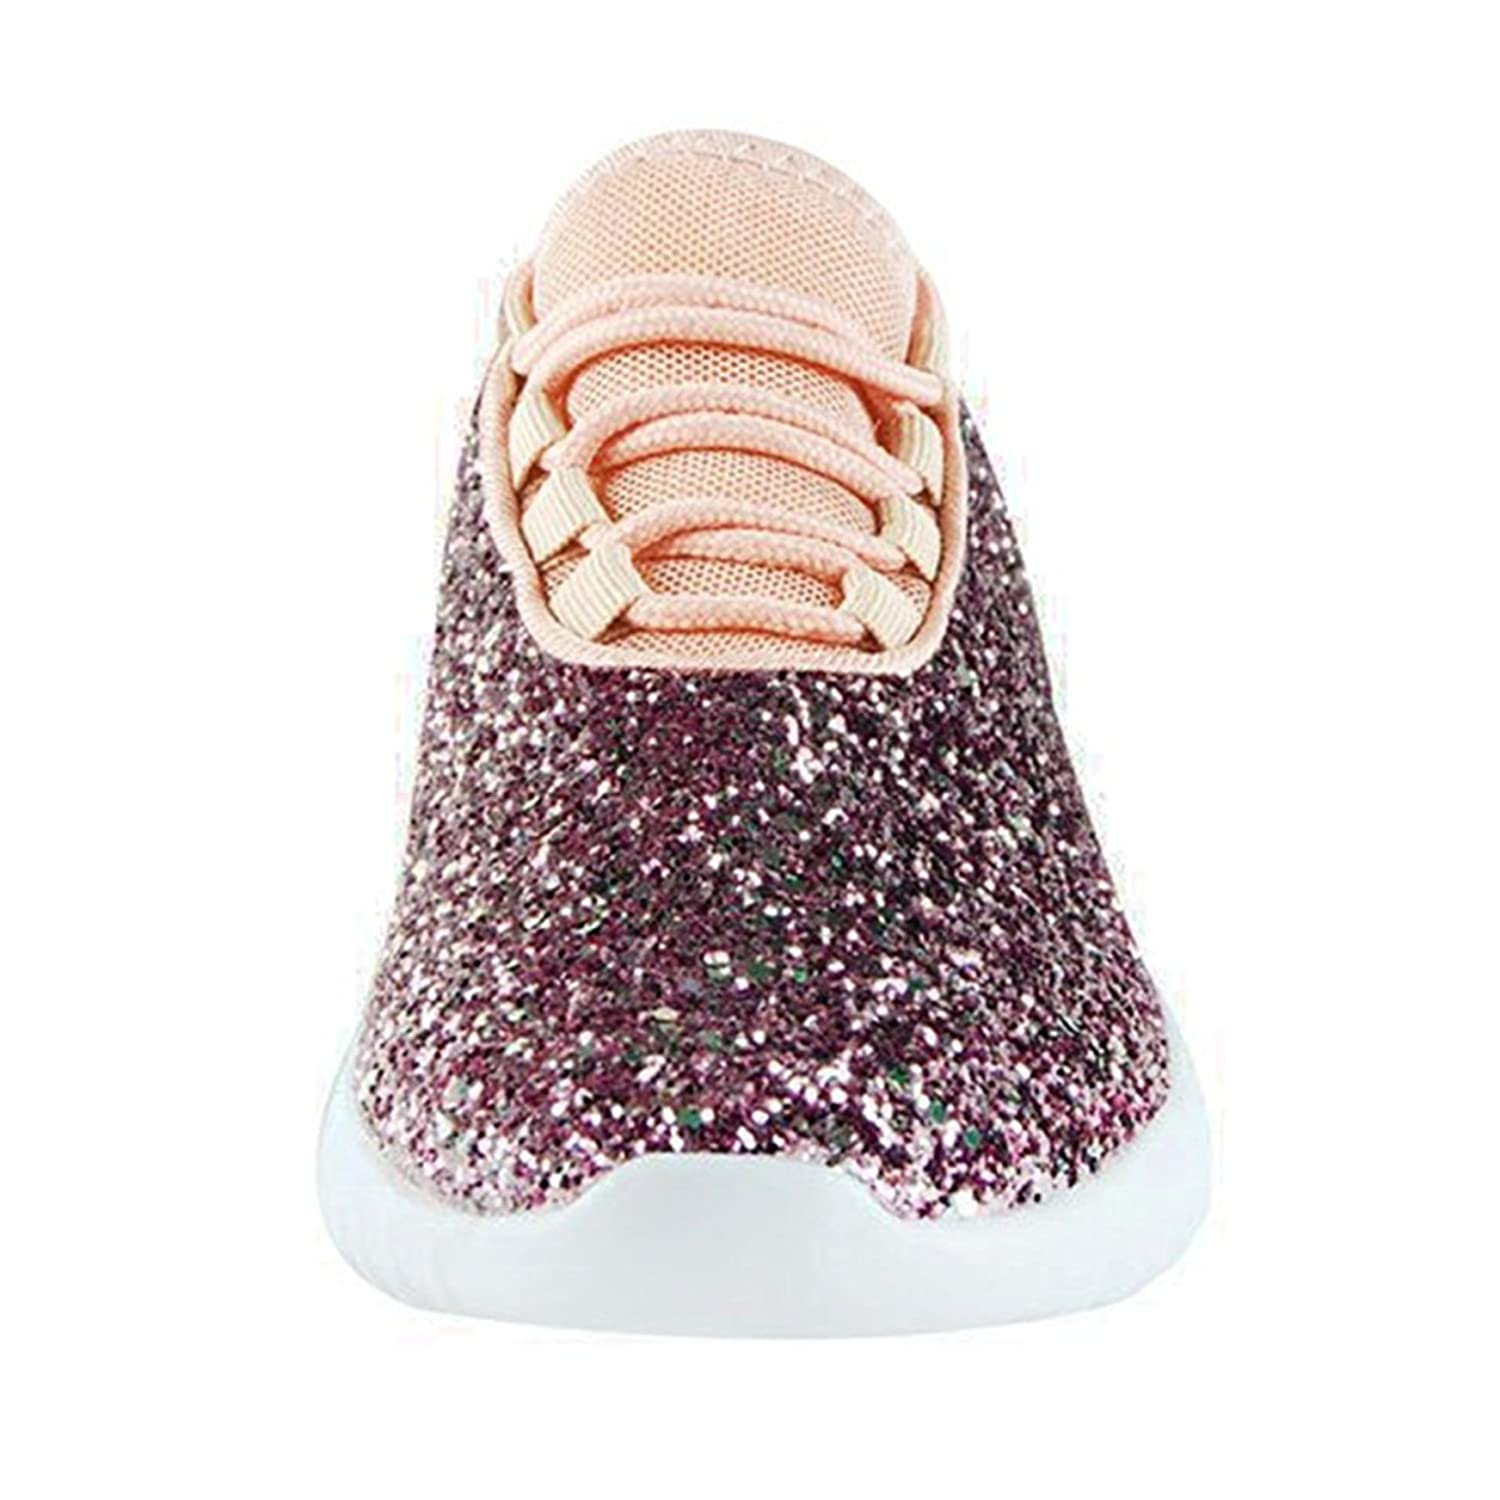 6a8ddeb9b68a ... SF Forever Link Remy-18 Women s Women s Women s Jogger Sneaker-Lightweight  Glitter Quilted Lace ...